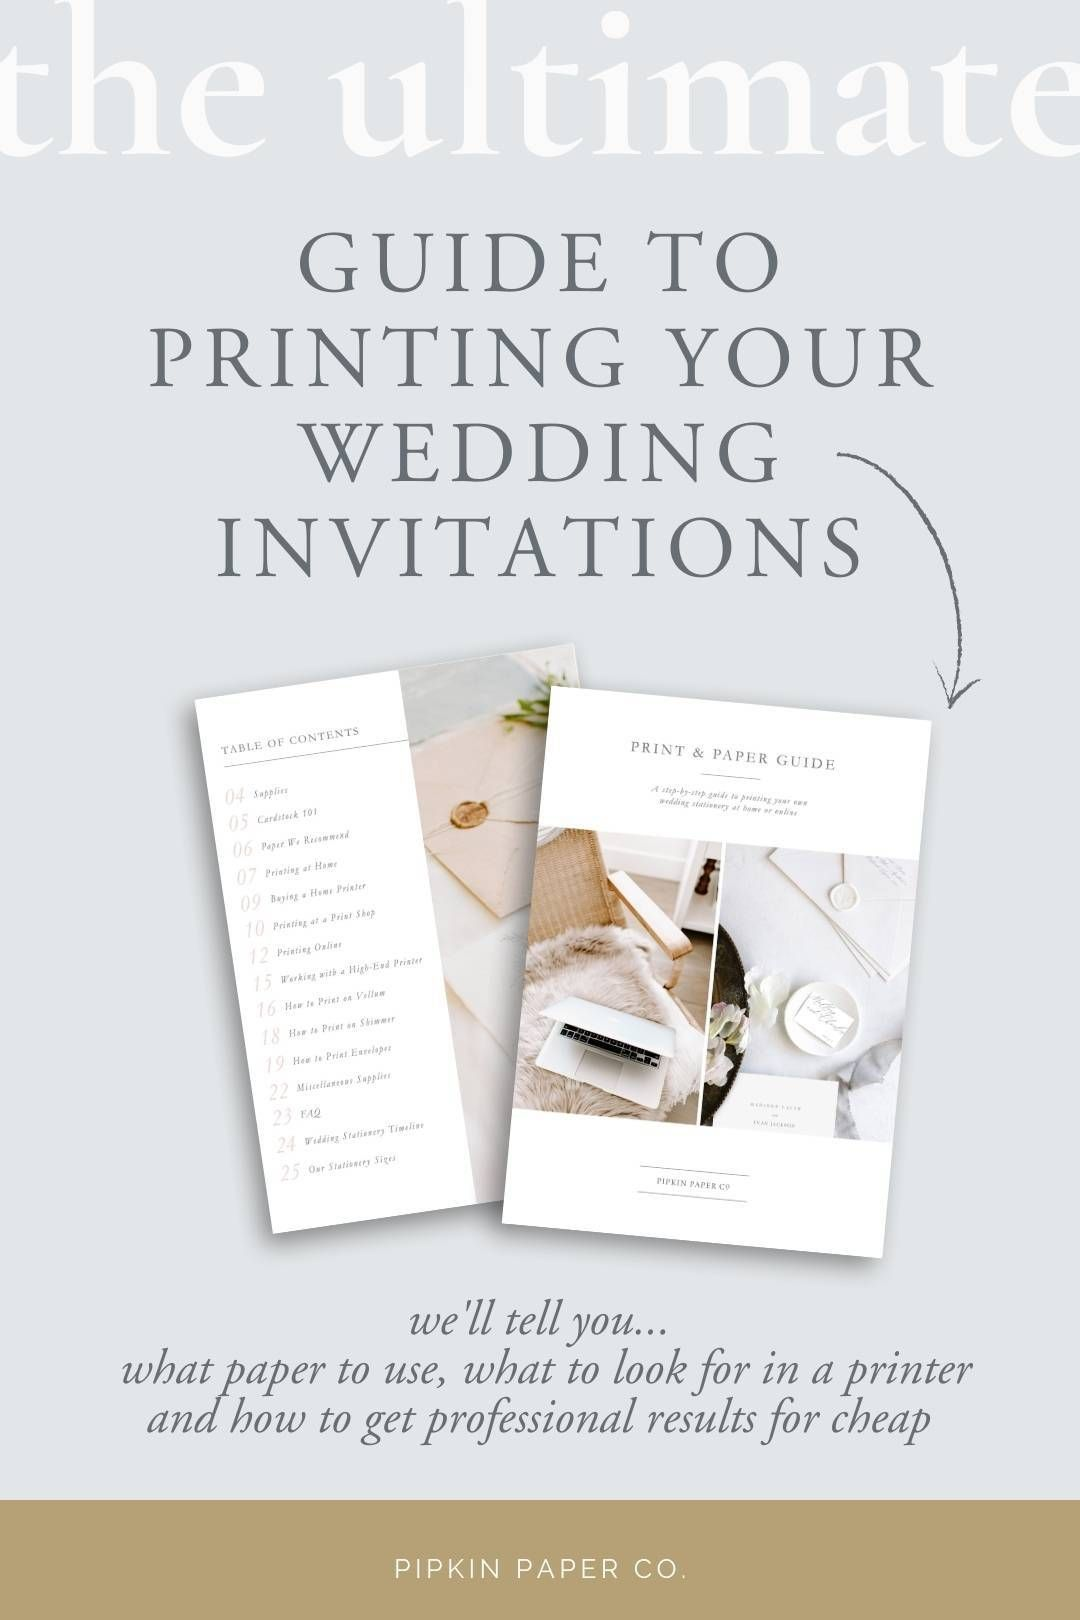 How To Print Your Wedding Invitation Template With This Etsy Wedding Invitation Templates Printing Wedding Invitations Wedding Invitations